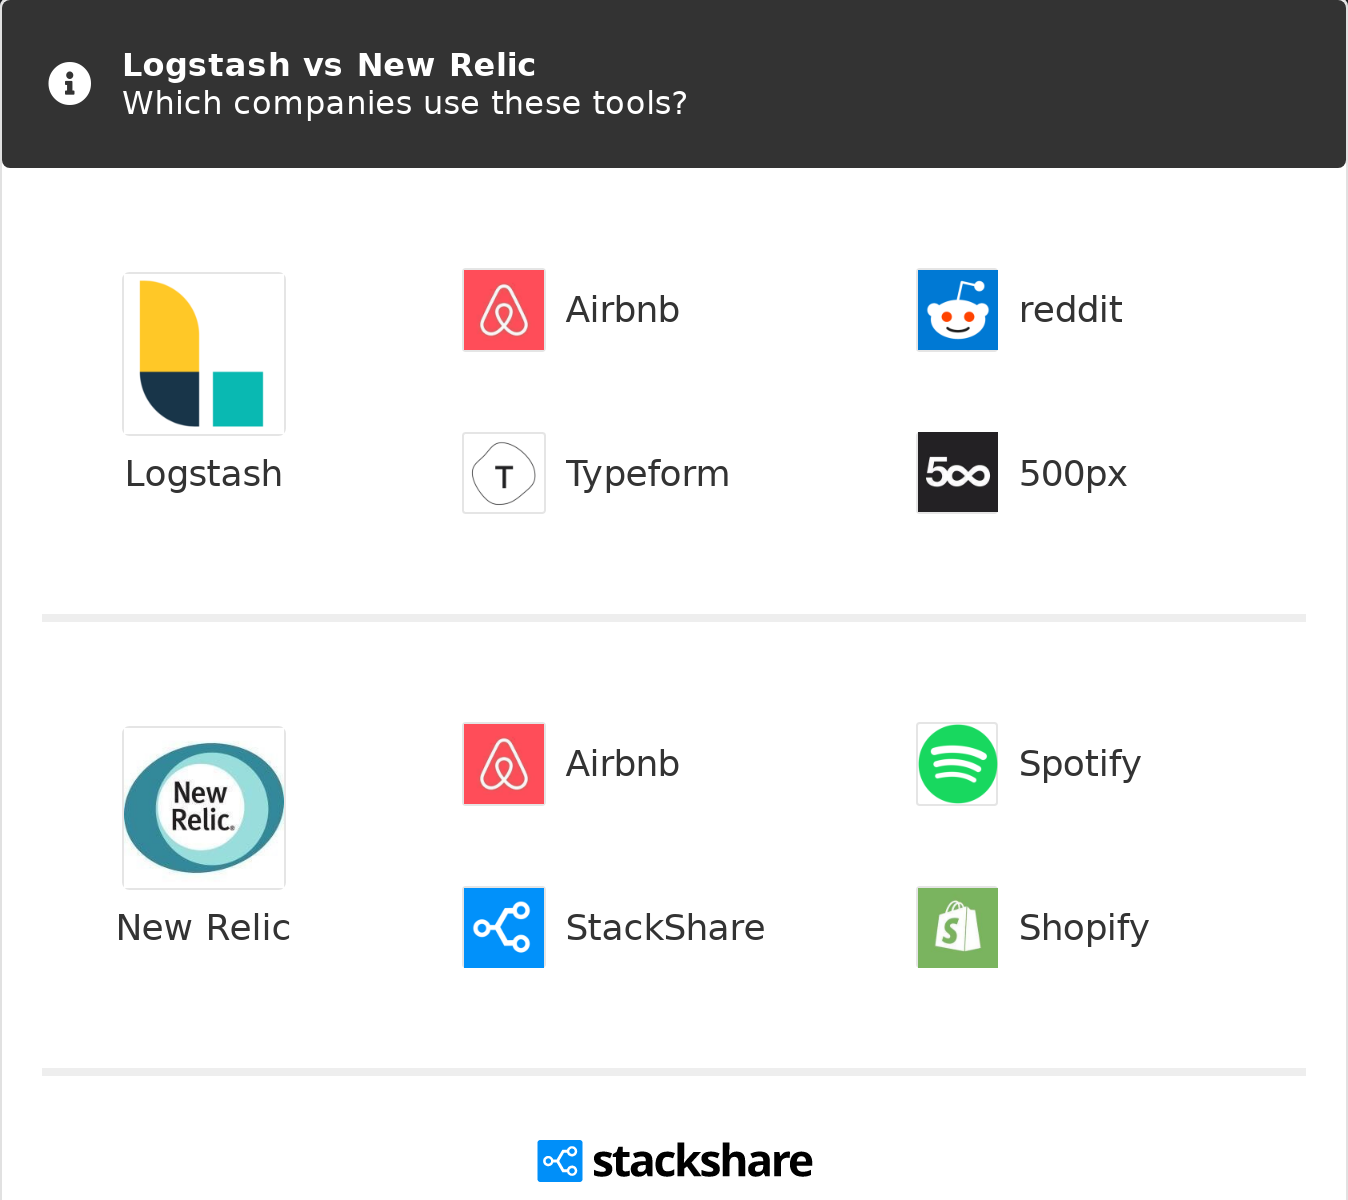 Logstash vs New Relic   What are the differences?